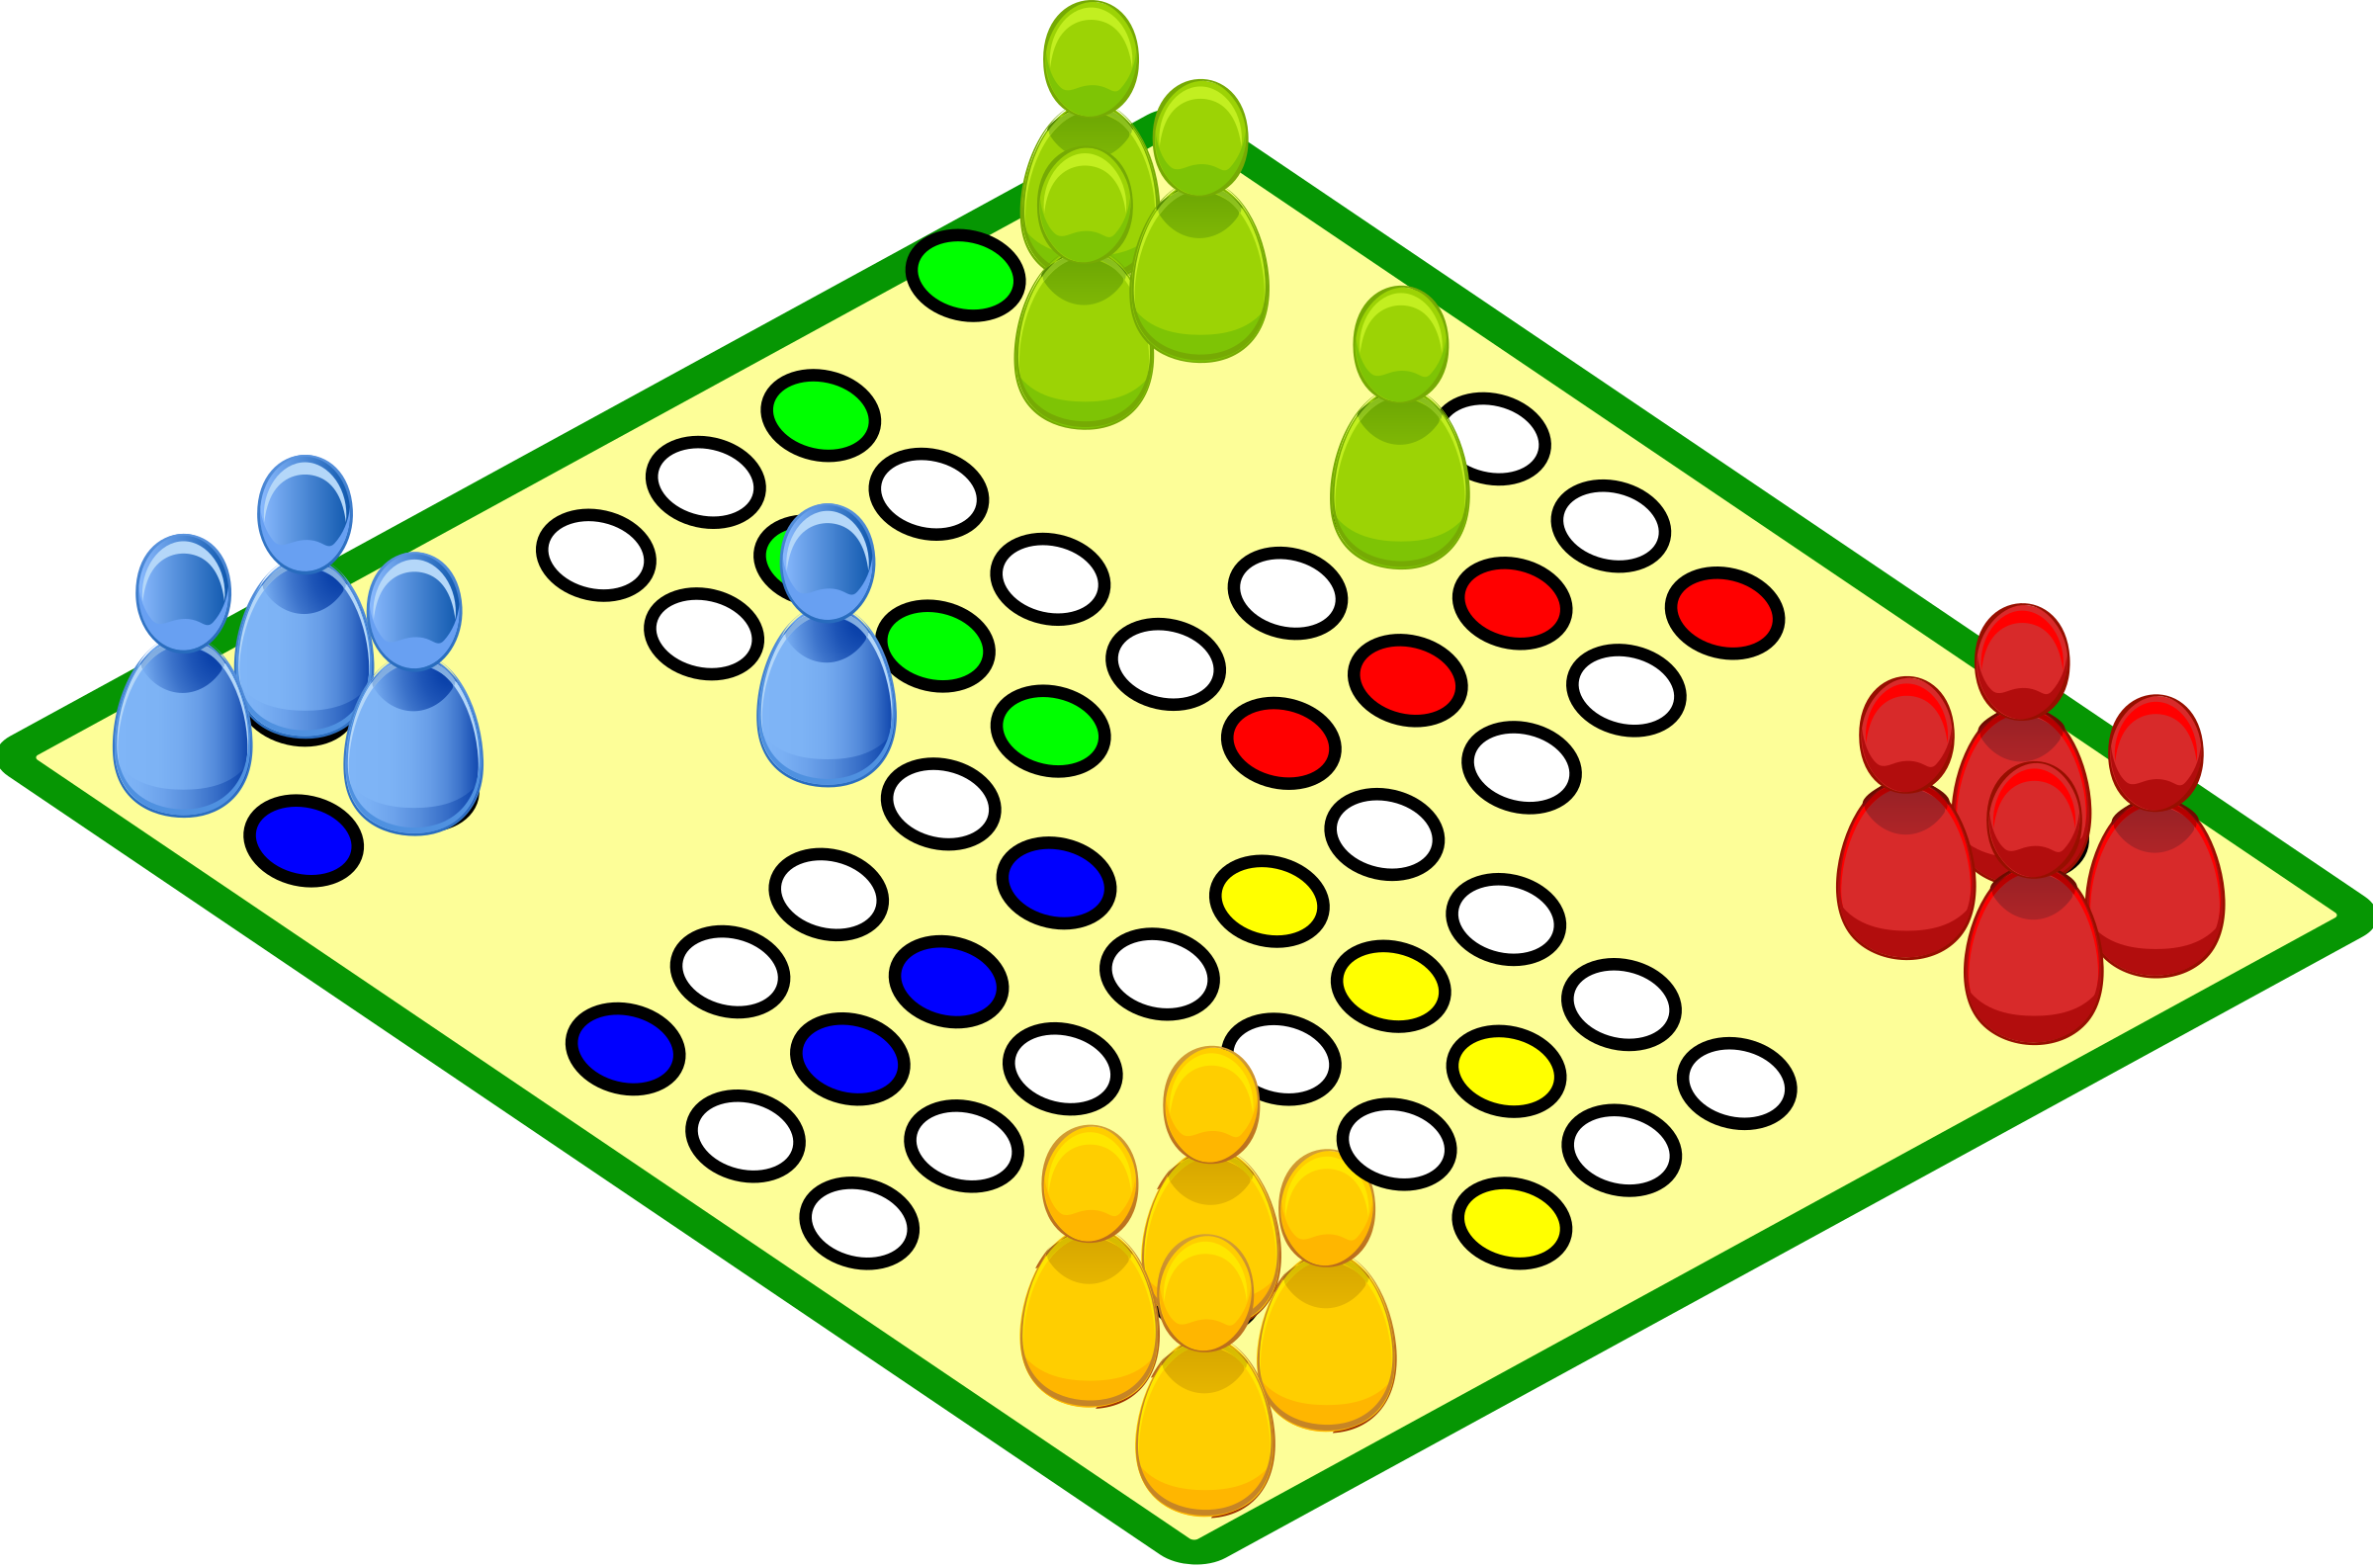 Člověče, nezlob se! board game by Juhele